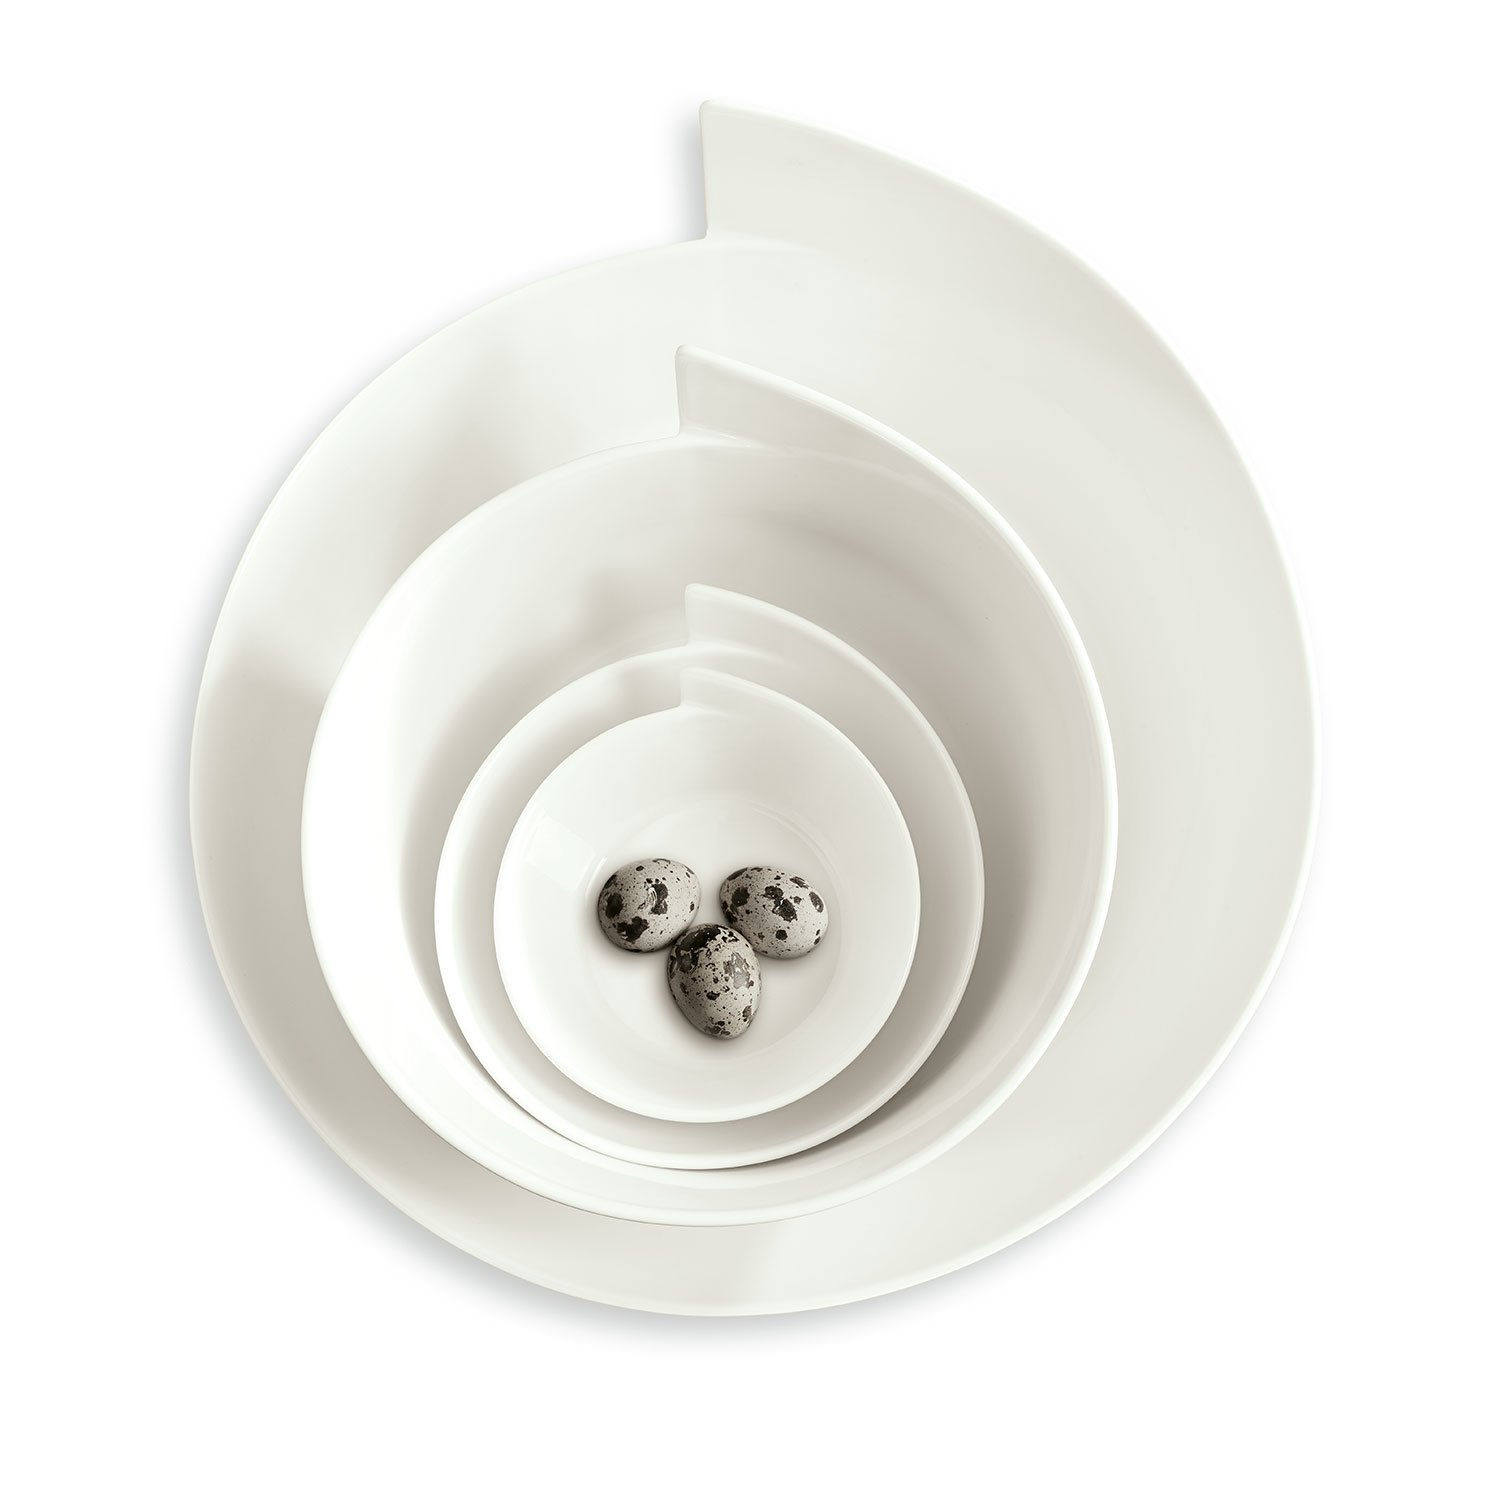 Villeroy & Boch New Wave Small Rice Bowl(s) by Villeroy & Boch (Image #6)